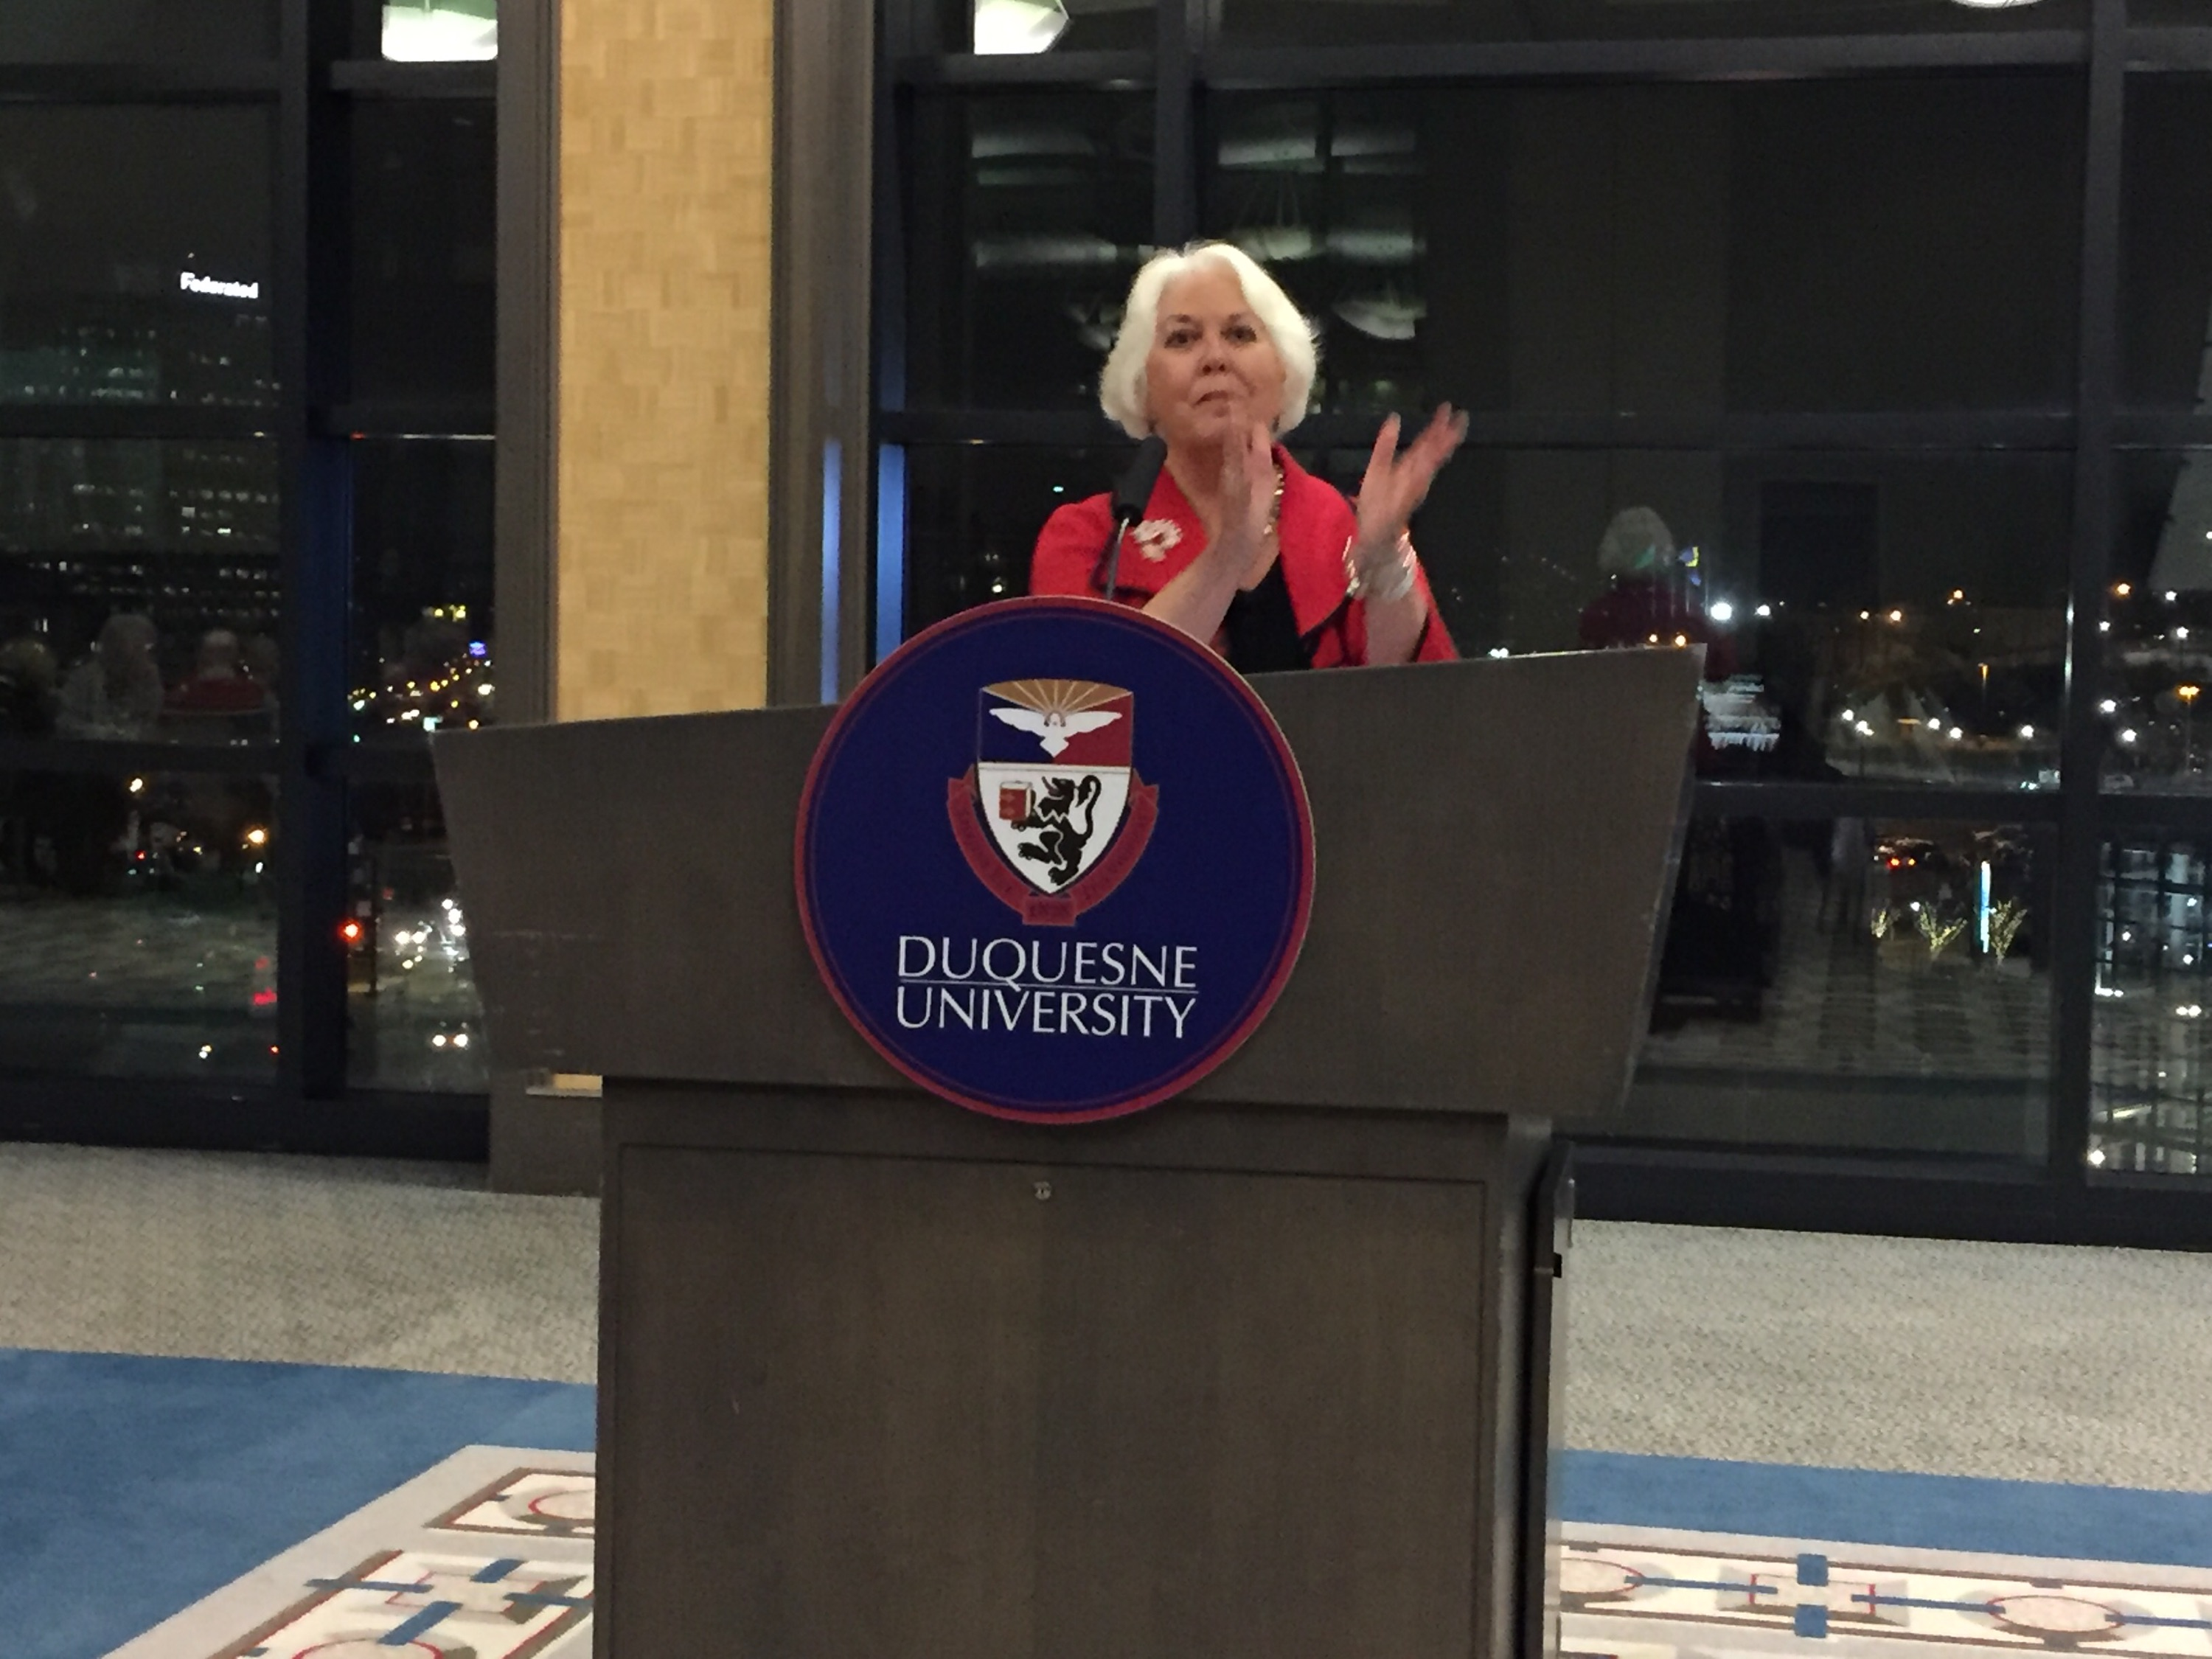 Women's Advisory Board President welcomes guests at annual Wine Tasting Event